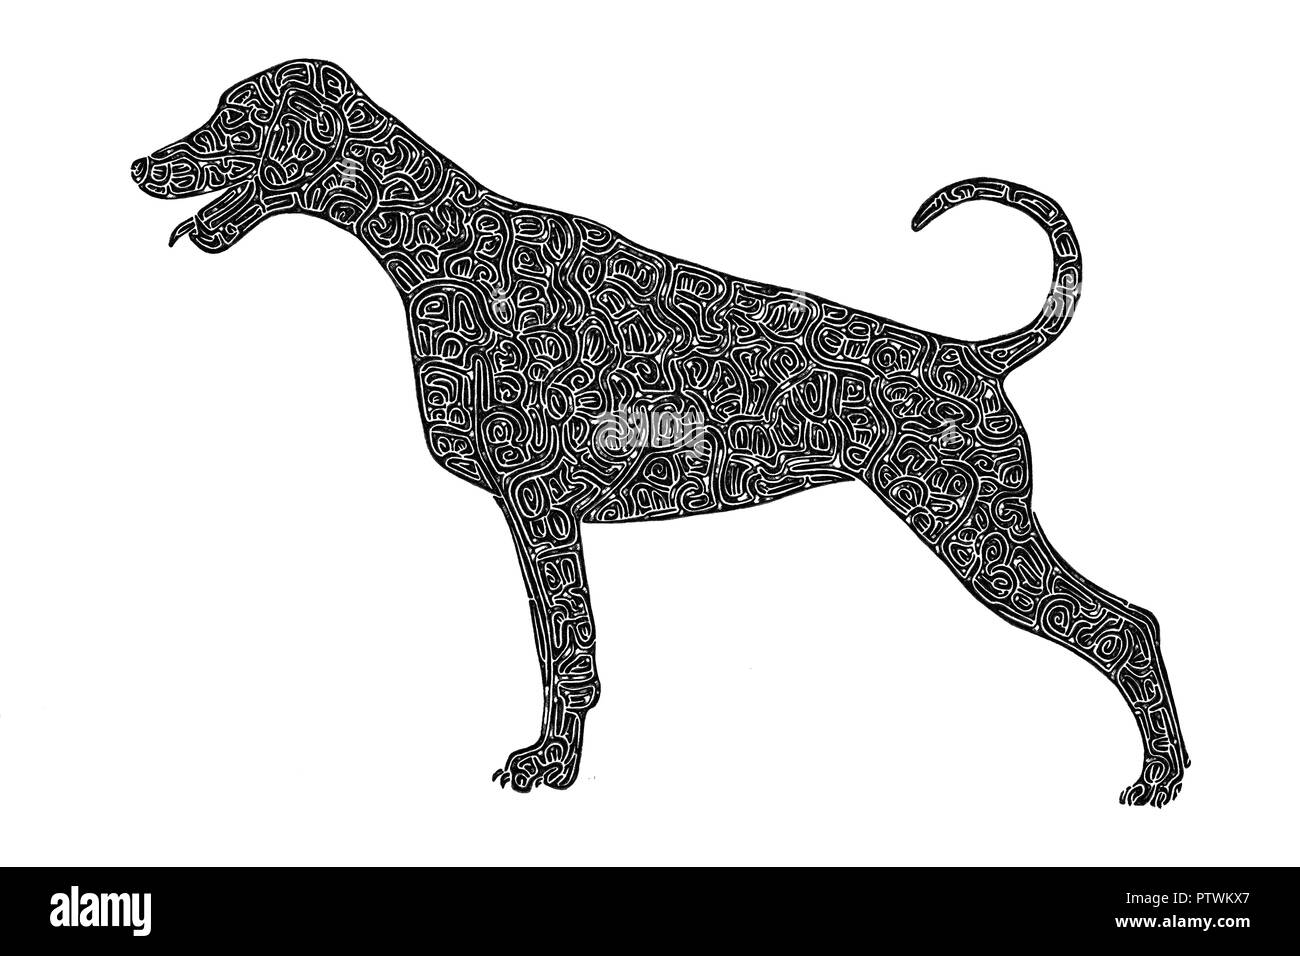 Illustration / drawing of a Dobermann / Doberman dog standing upright, black-and-white, maze lines - Stock Image